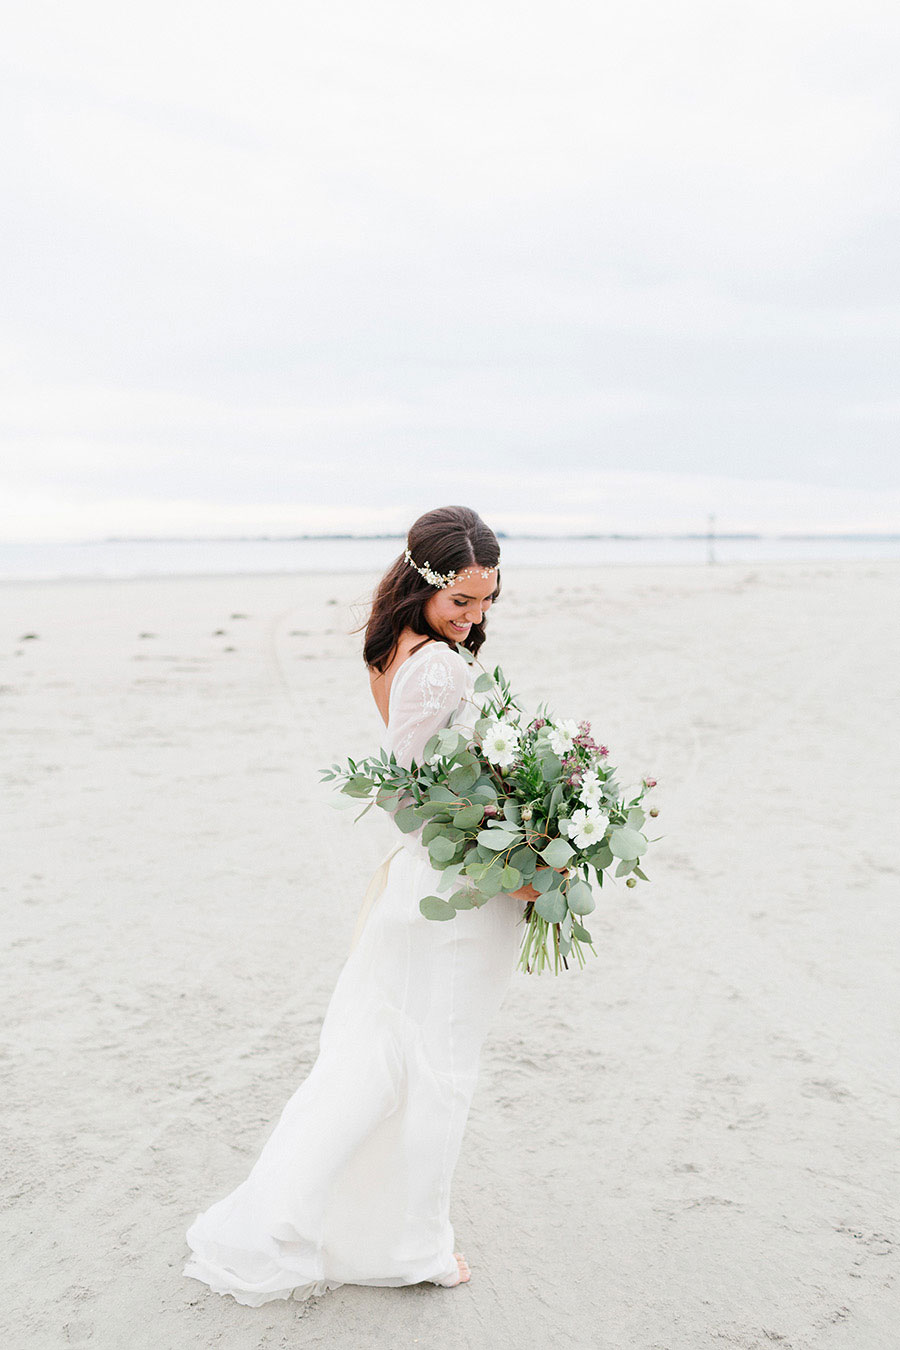 Down By The Sea! A Free-Spirited Elopement Editorial Shoot0030